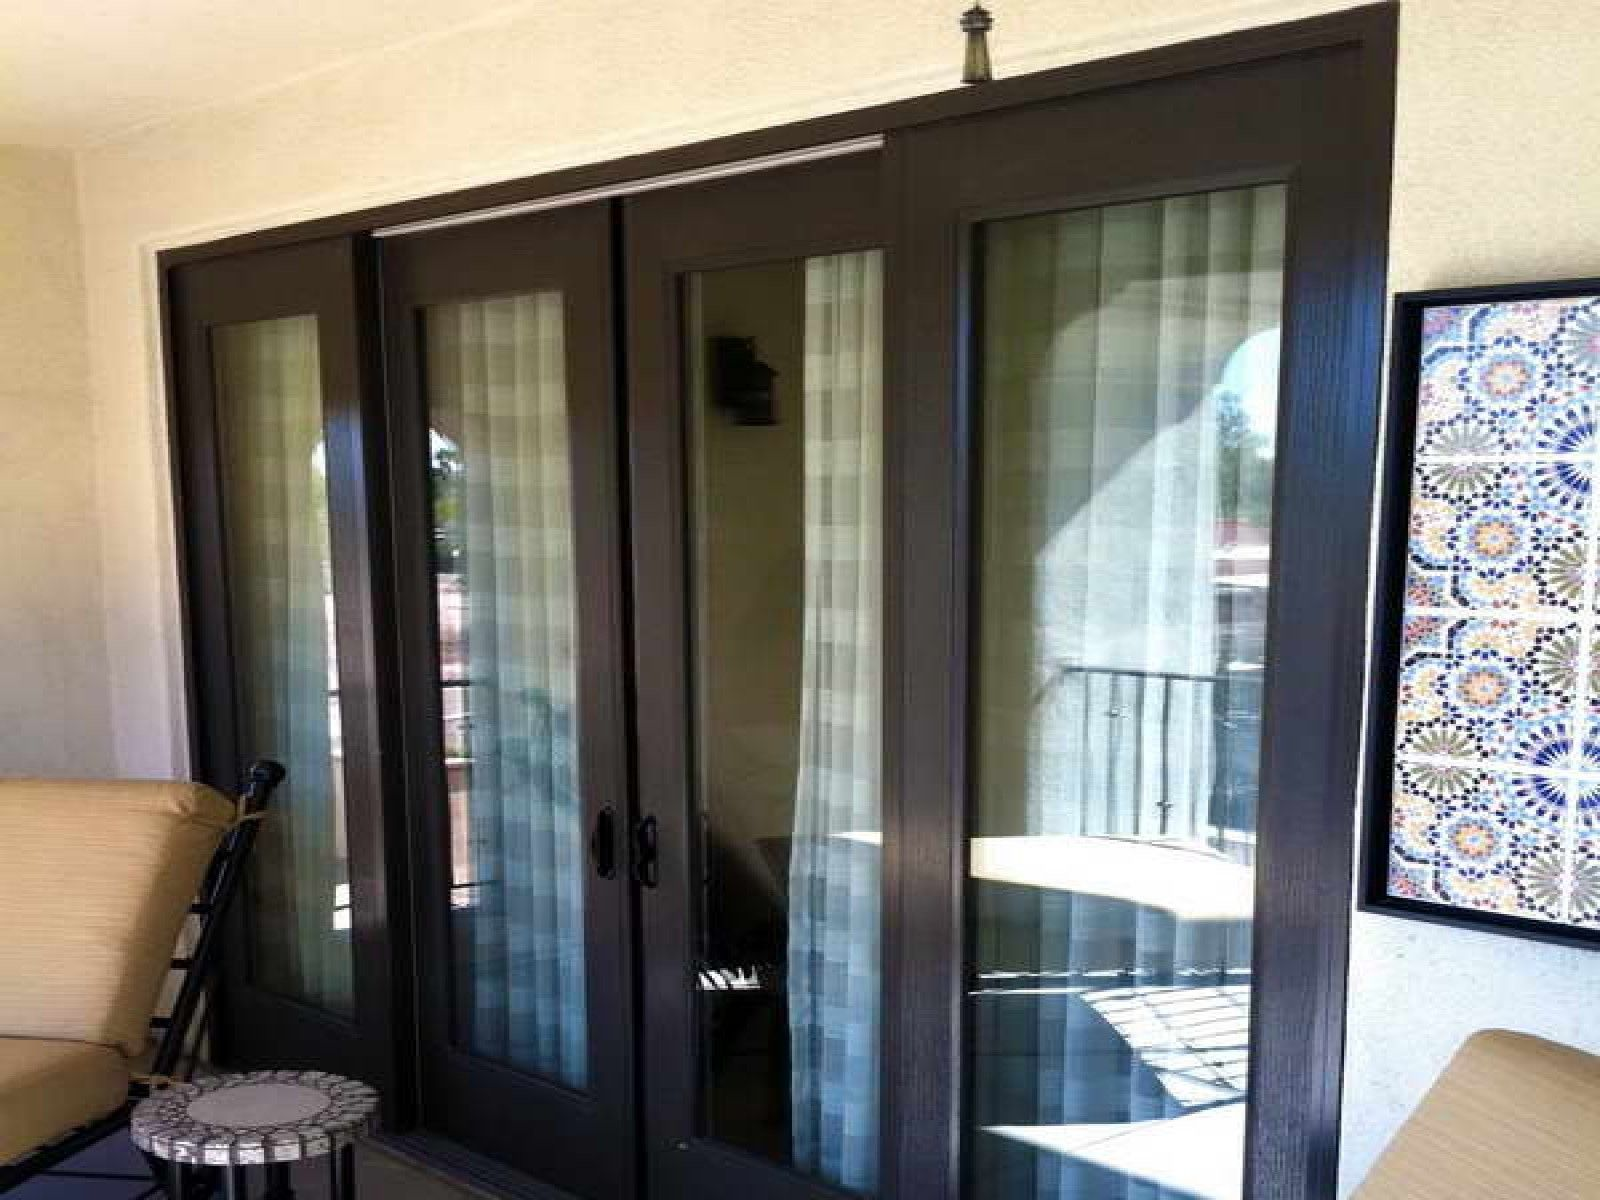 Black Sliding Patio Doors Google Search Glass Doors Patio Sliding Patio Doors Sliding Doors Interior